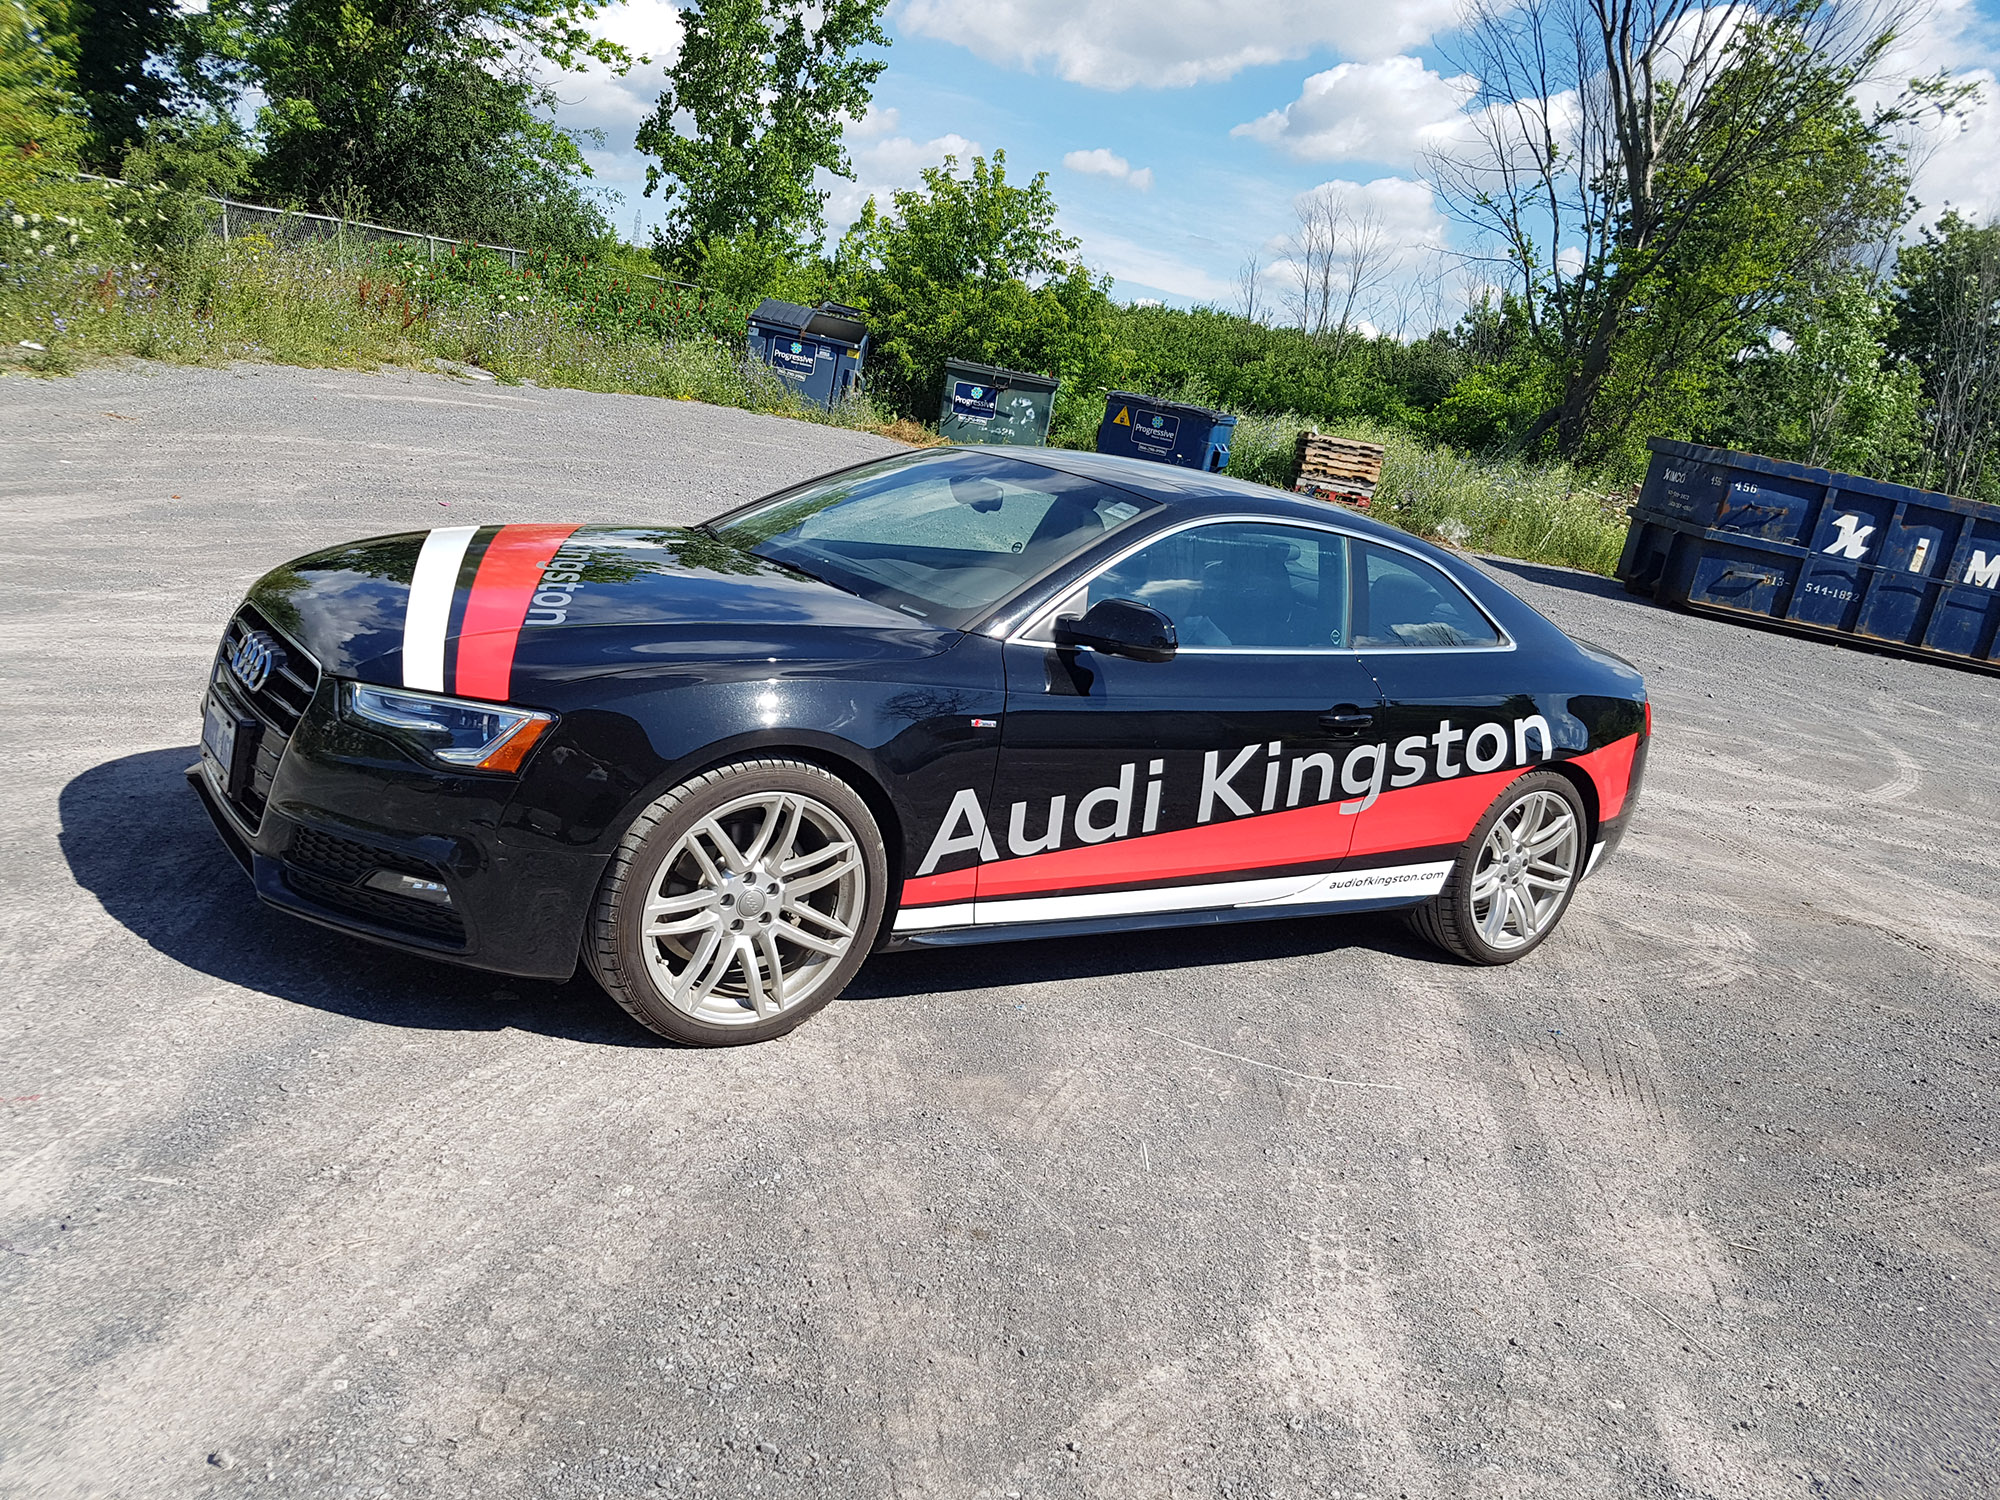 Audi Kingston